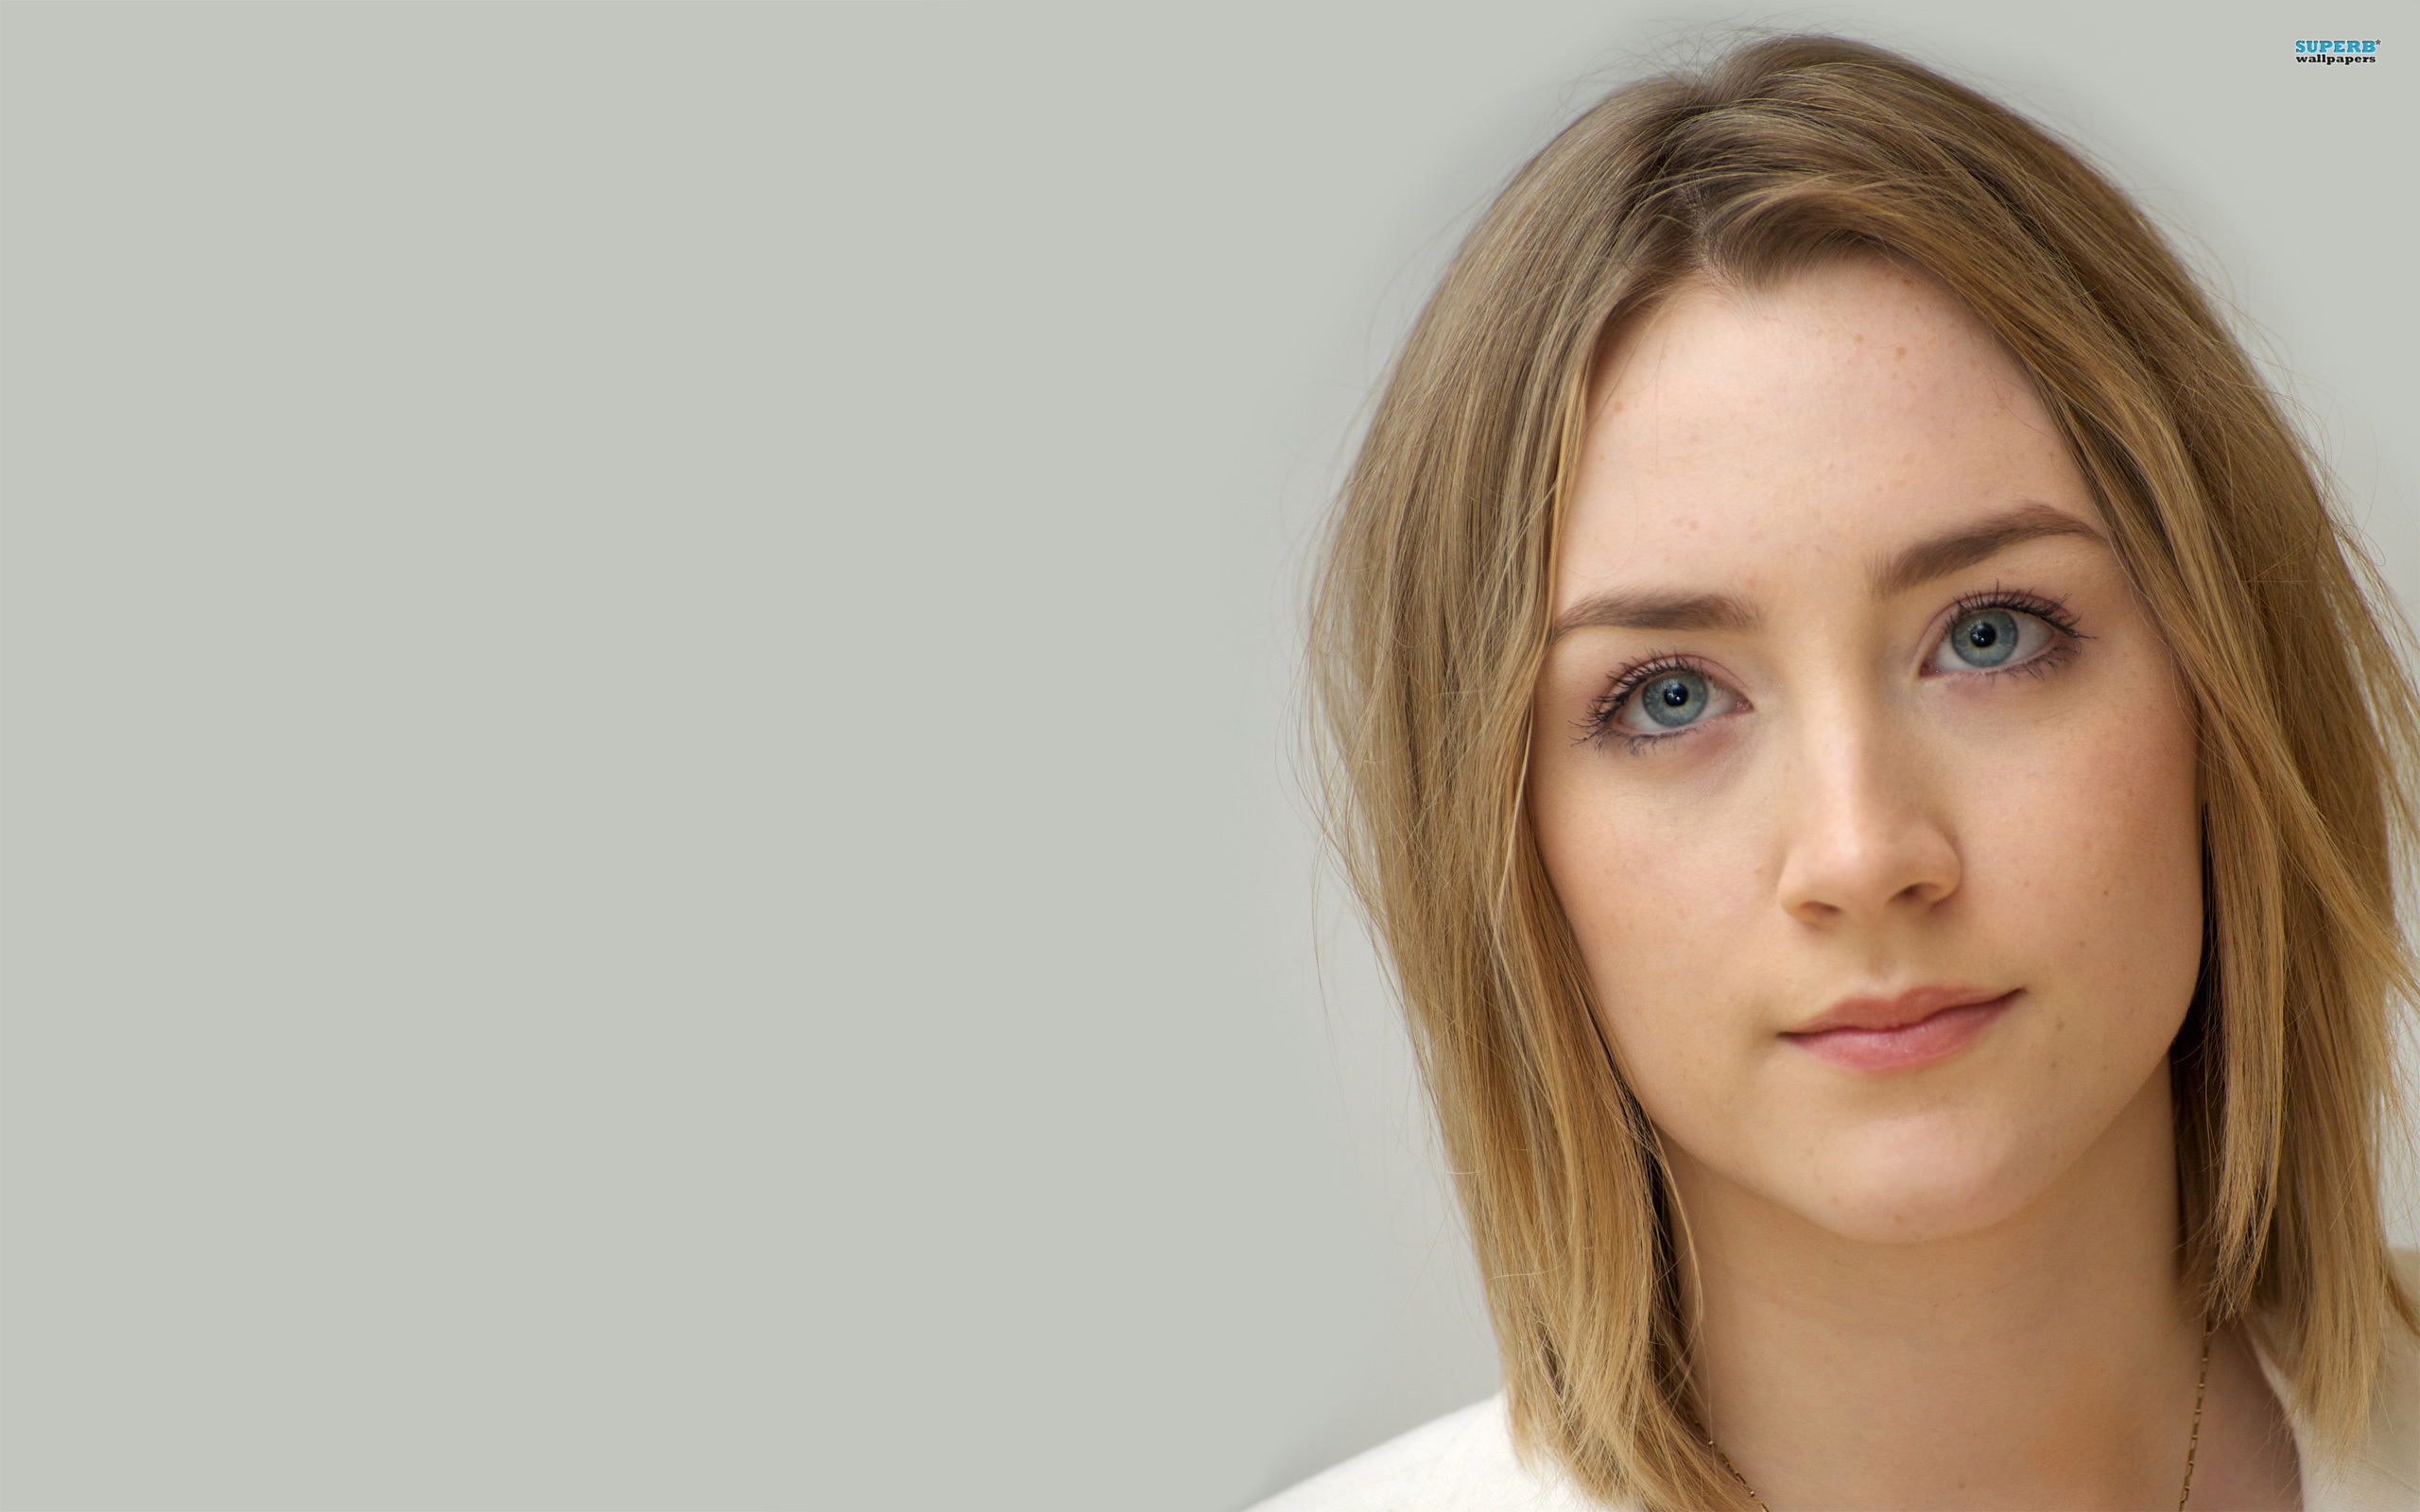 saoirse ronan hd wallpaper – 2560 x 1600 pixels – 600 kB